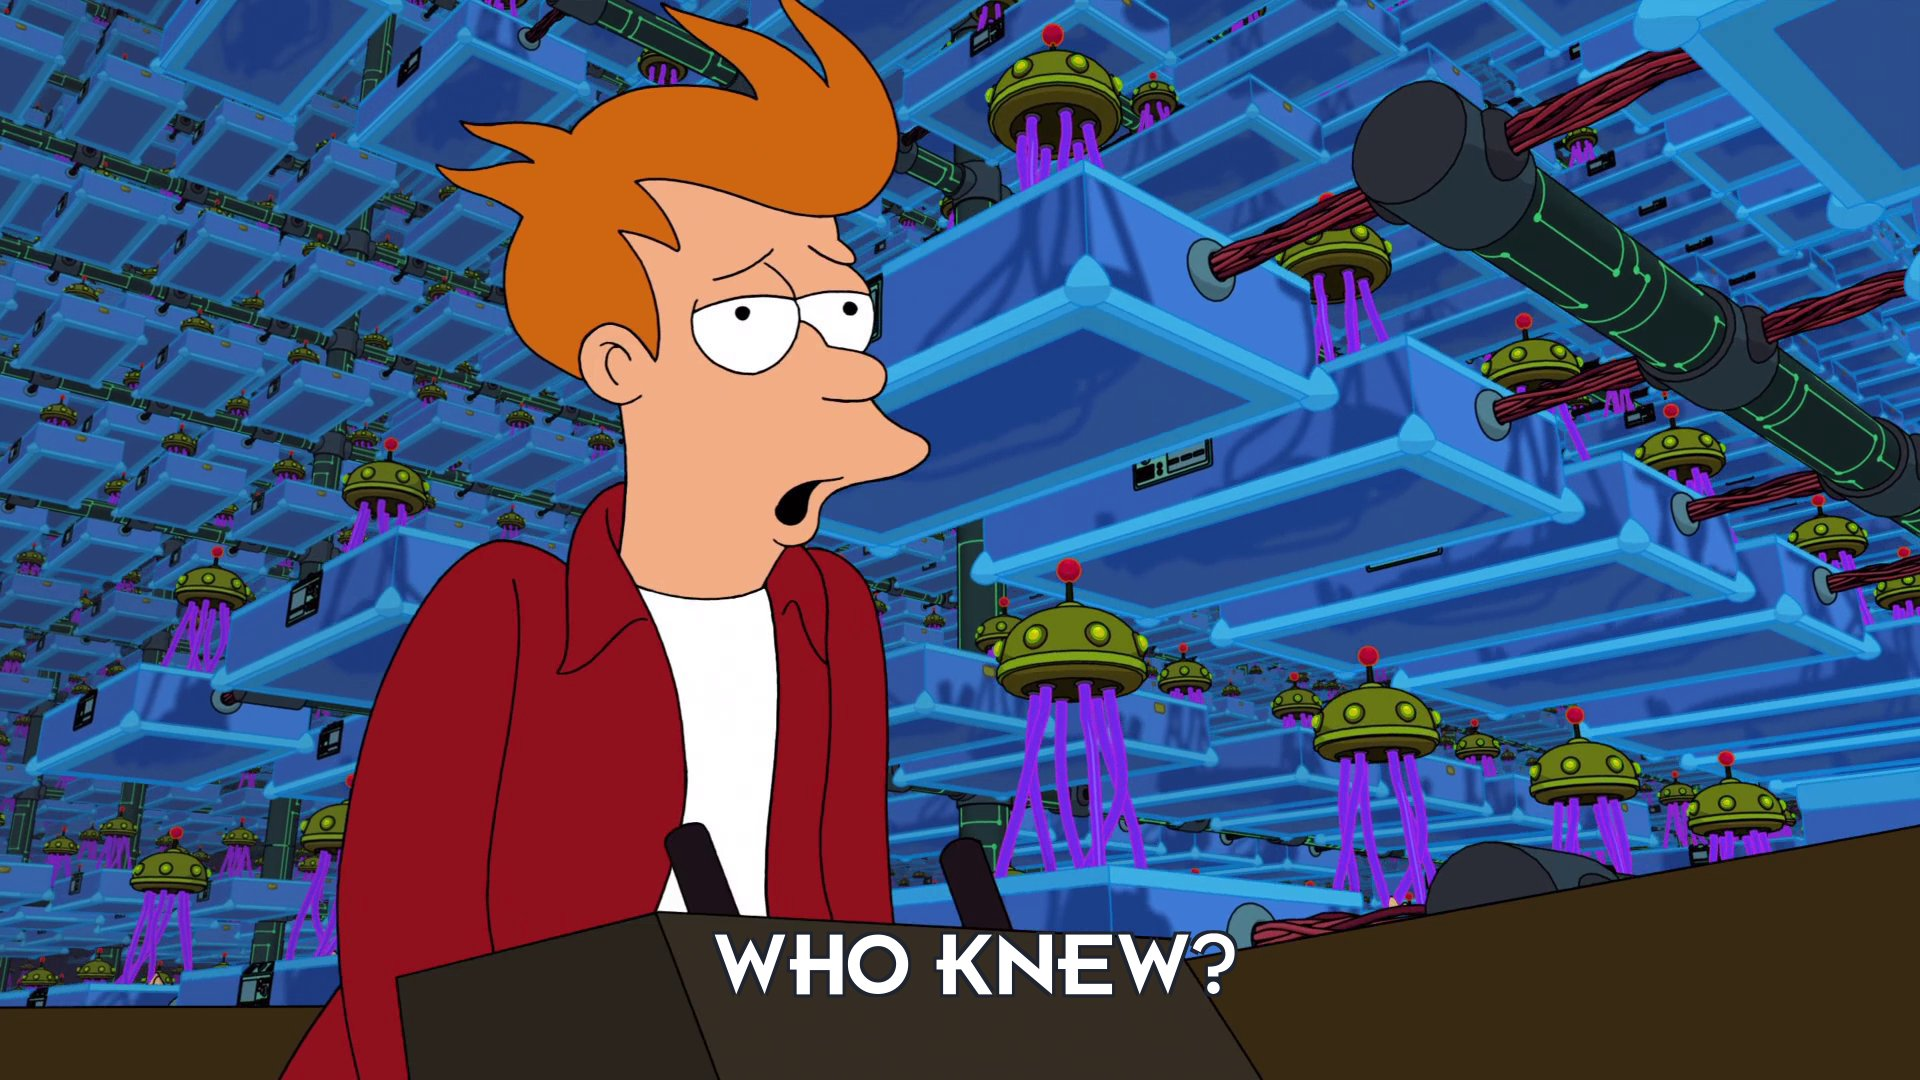 Philip J Fry: Who knew?